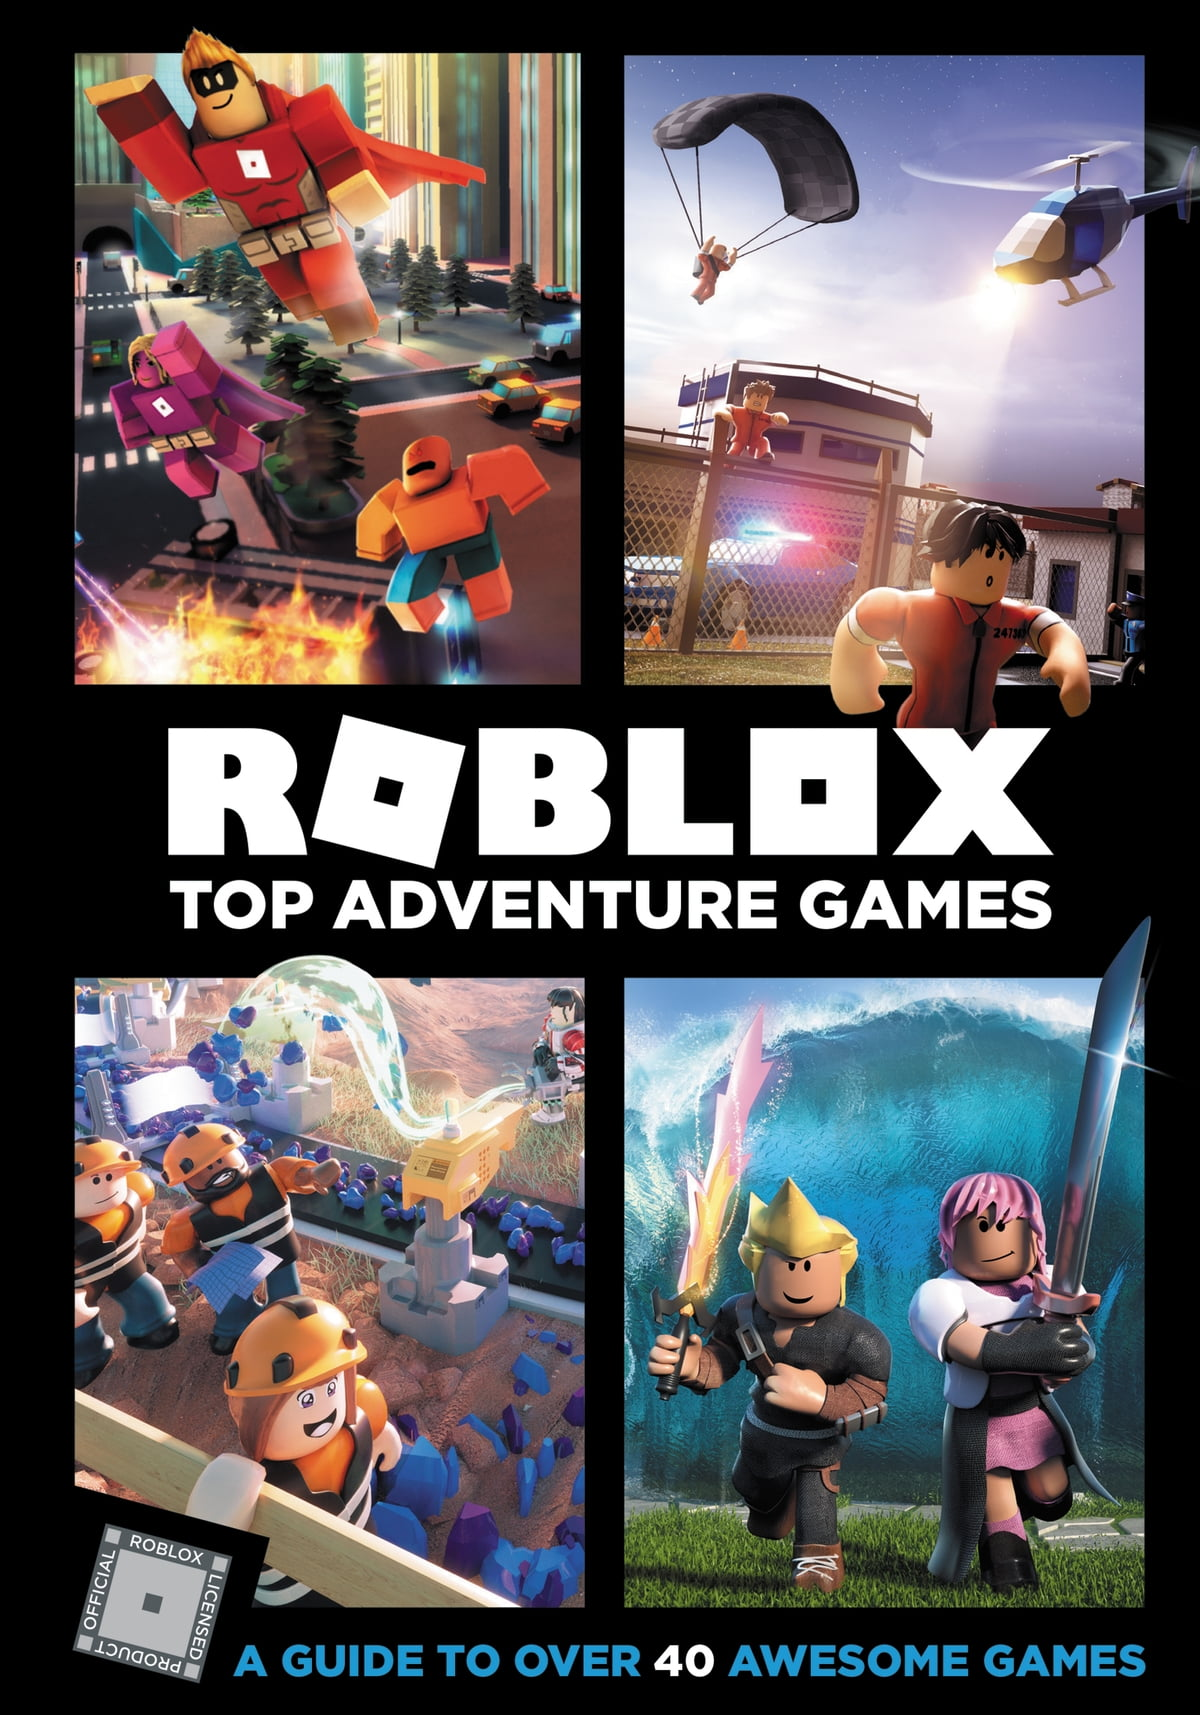 Tips Roblox Lumber Tycoon 2 Free Android App Market - Roblox Top Adventure Games Ebook By Official Roblox Rakuten Kobo